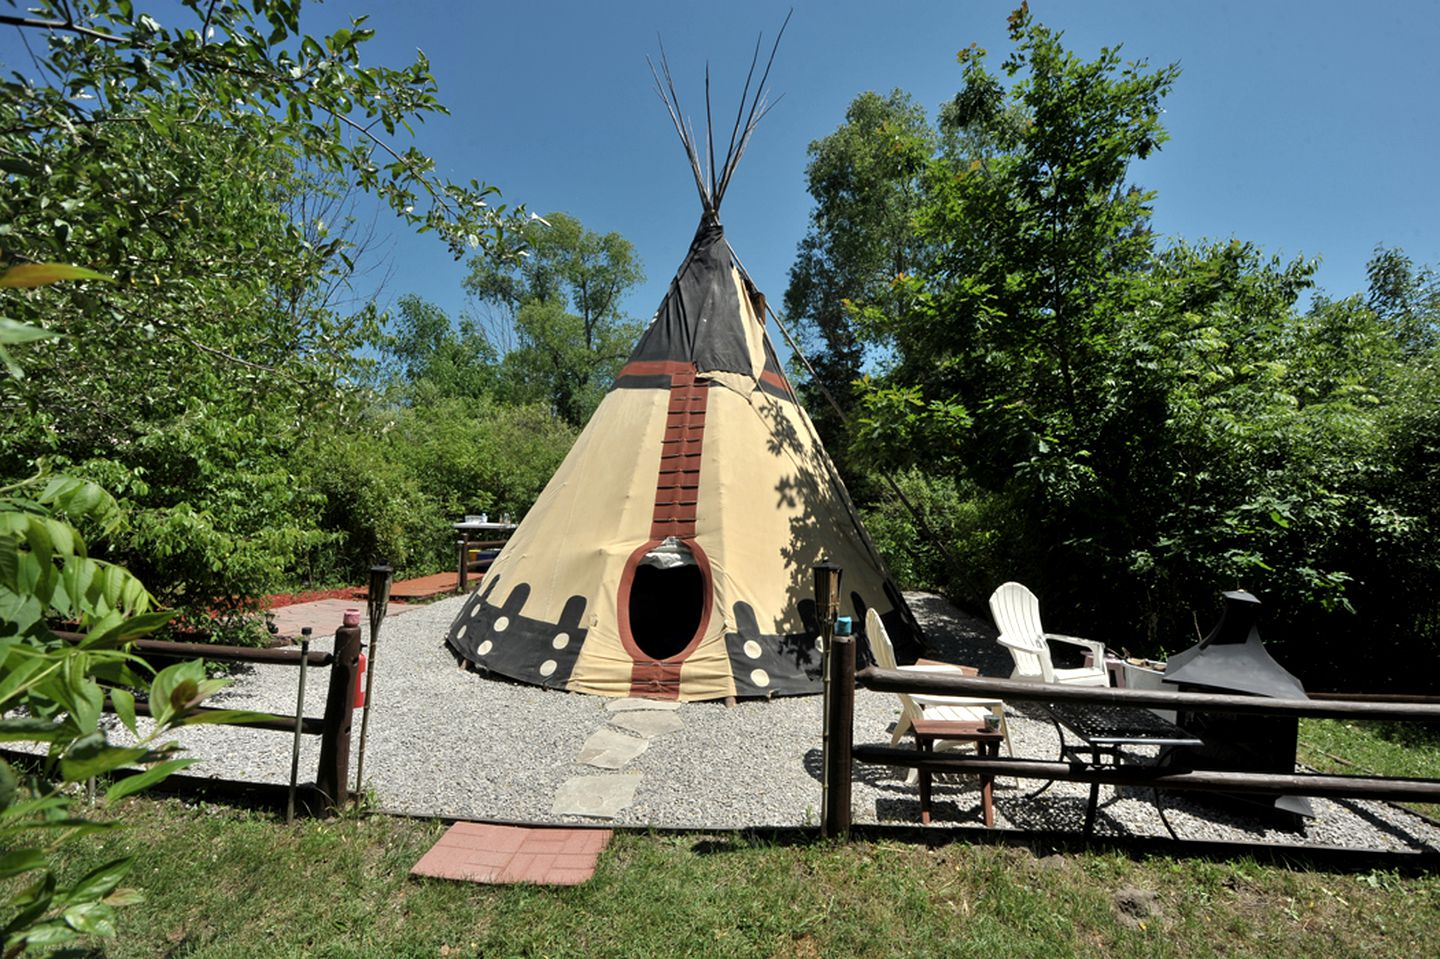 Luxury tipi and camper rental: Michigan beach vacation rentals